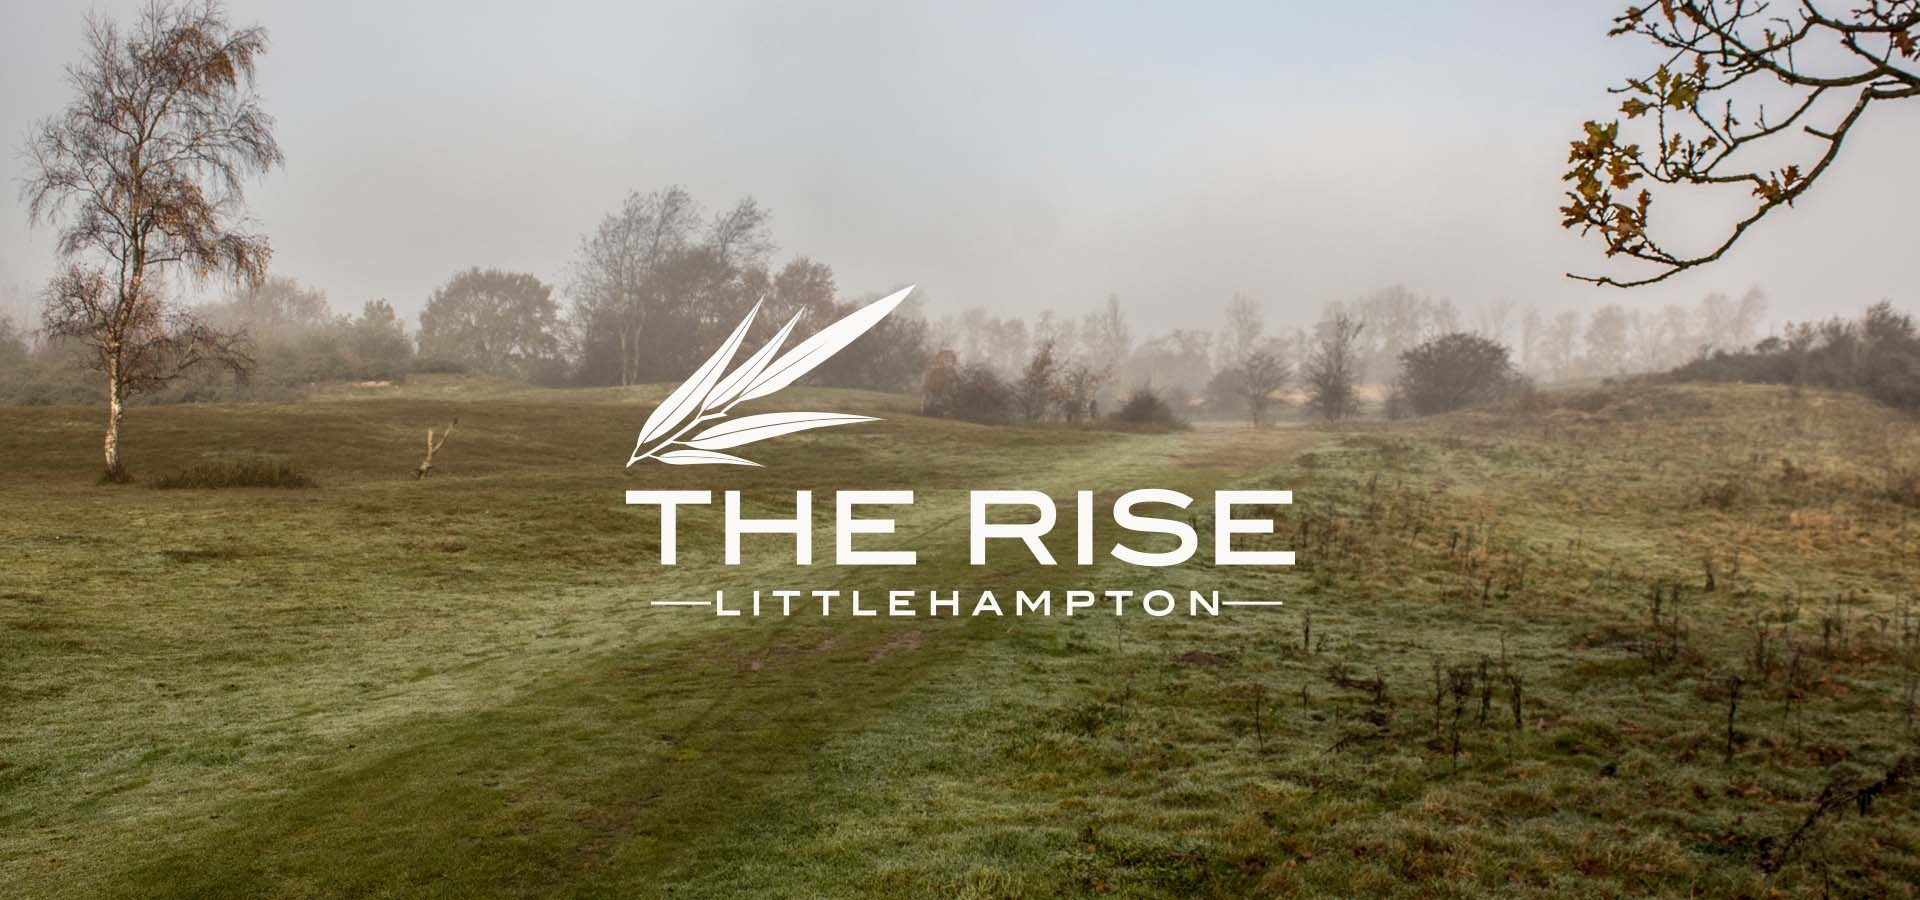 the rise littlehampton cold morning adelaide hills slider with logo